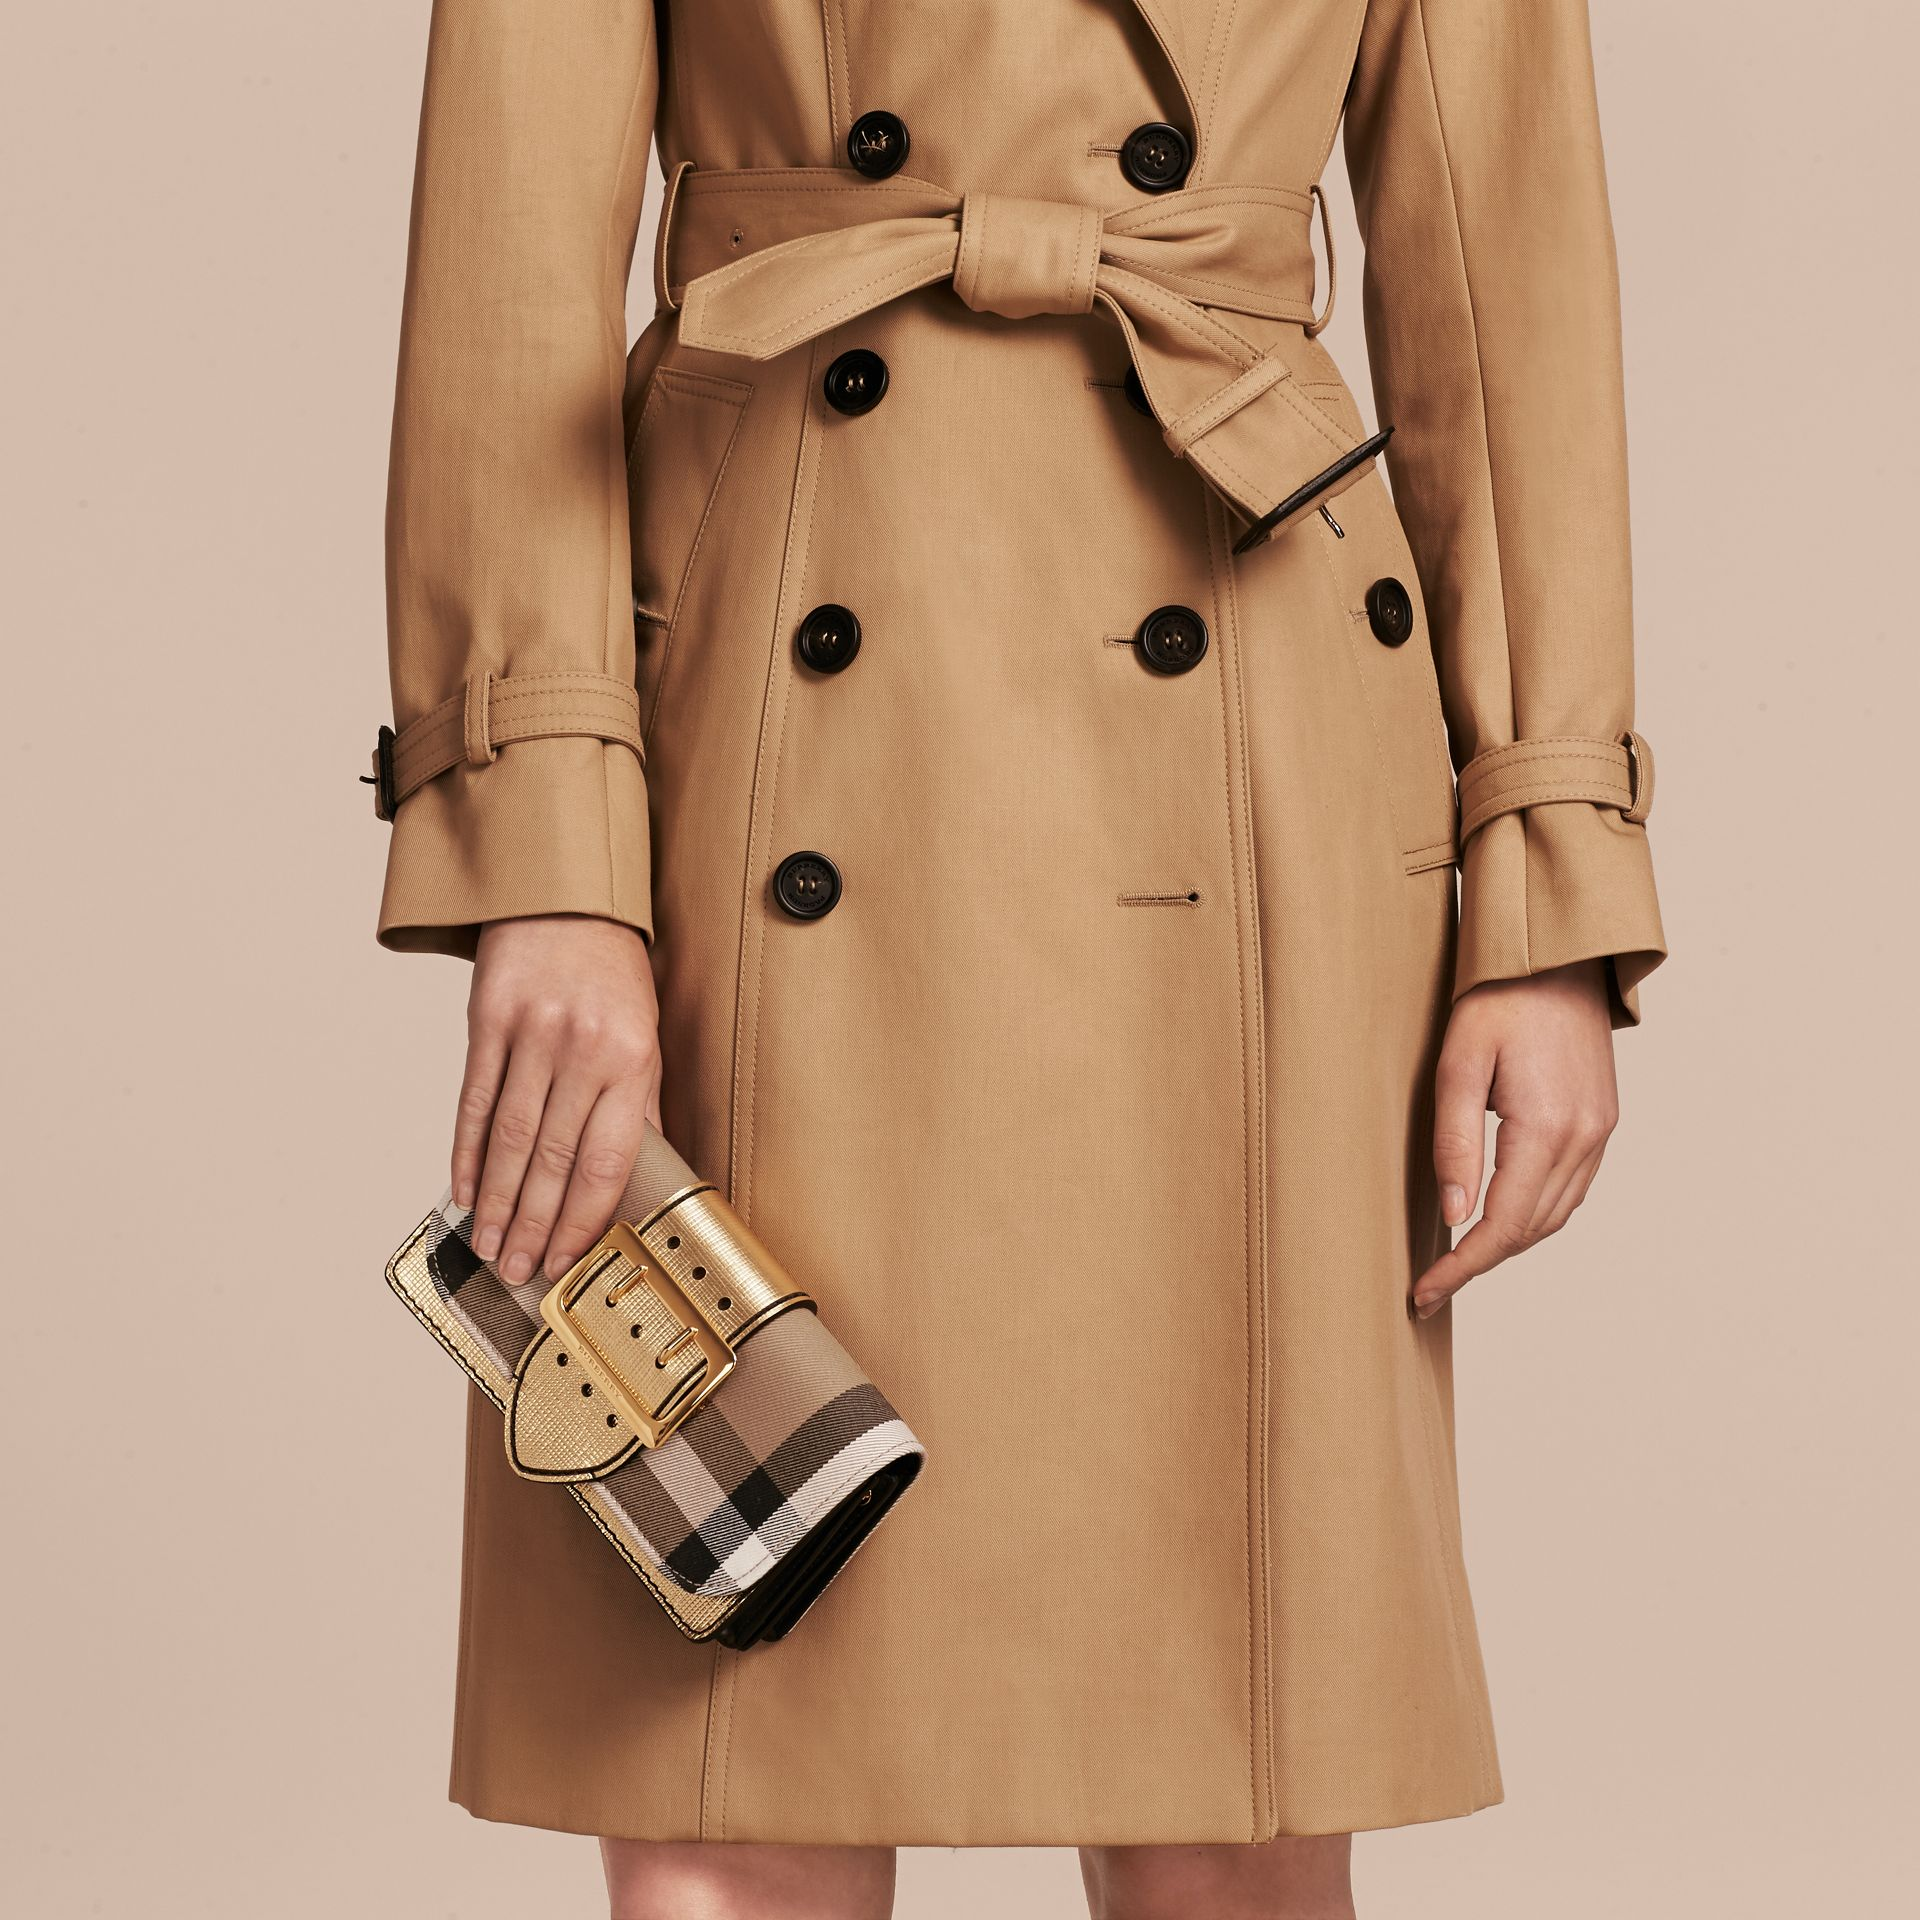 The Small Buckle Bag in House Check and Leather in Gold - Women | Burberry Canada - gallery image 4